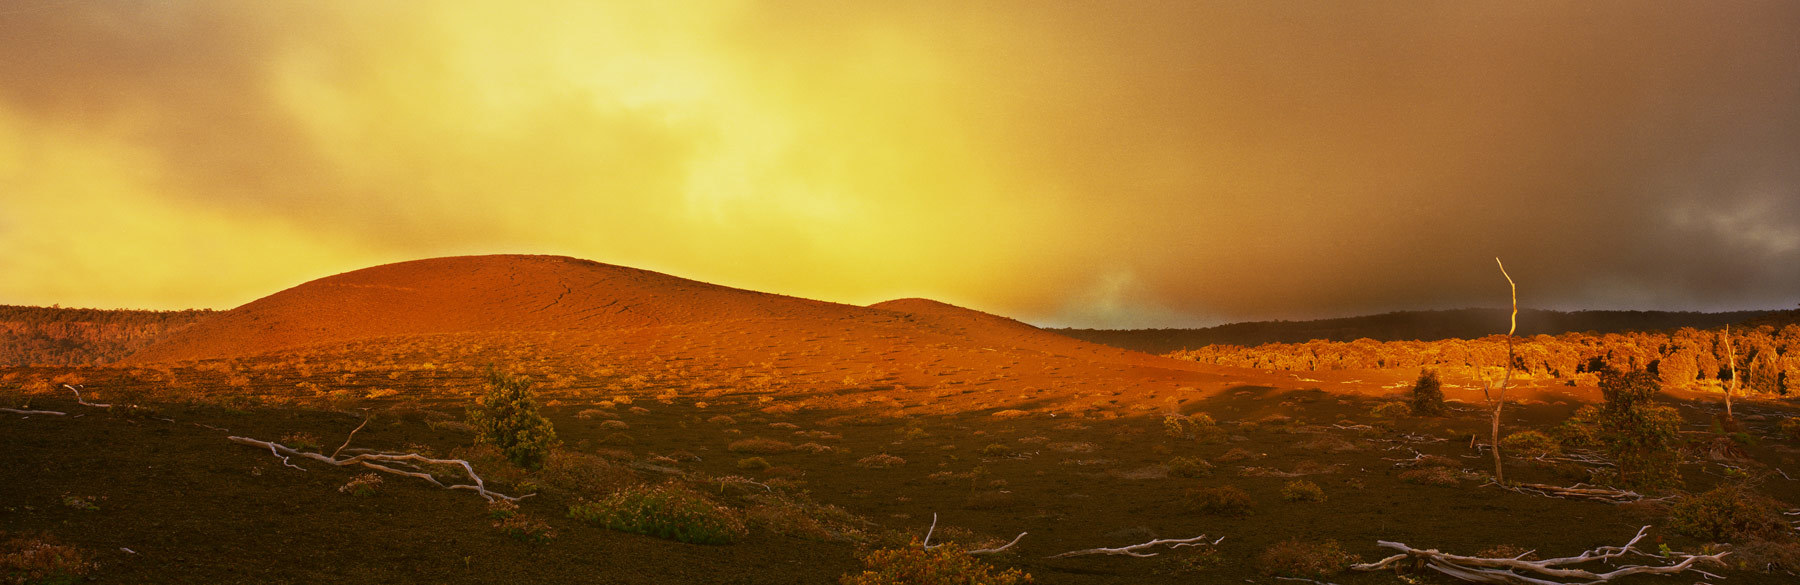 Lightbox_jorstad_hawaii_volcanoes_guywhu